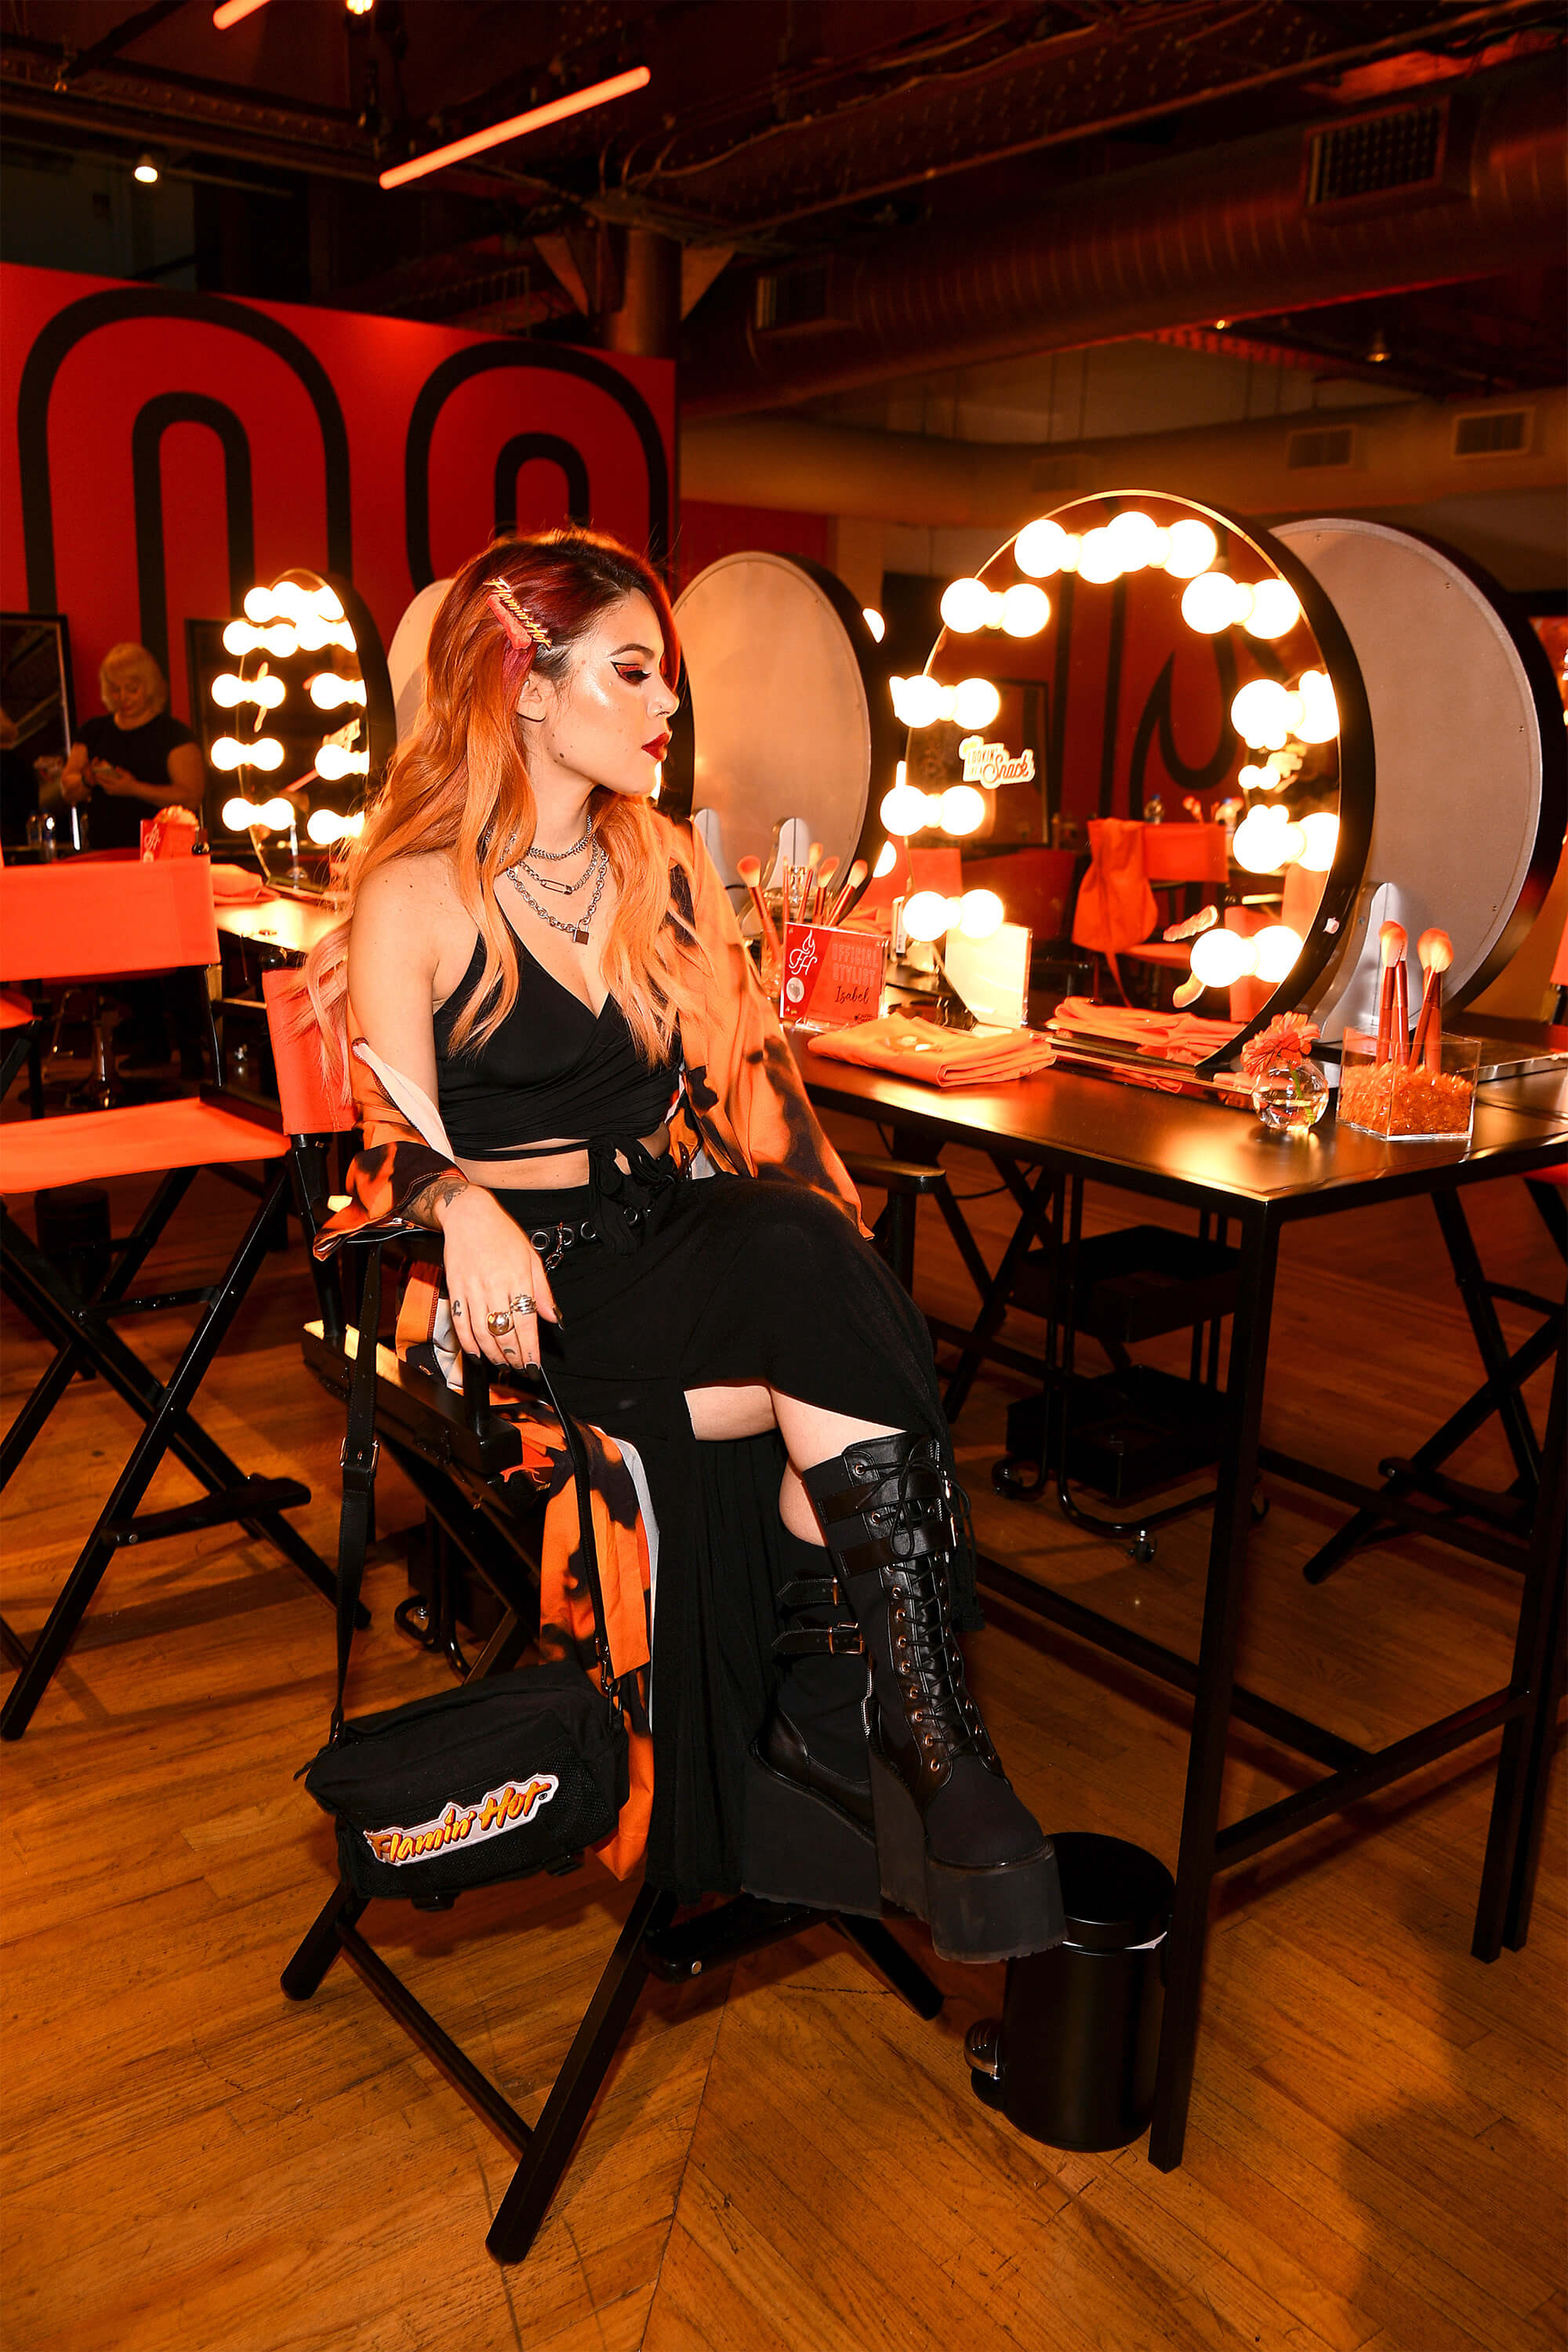 After the runway show, fans of the brand signed up for appointments at the House of Flamin' Haute Style Bar, where they received Cheetos-inspired hair, nail, and makeup looks from Chester Cheetah and a team of professional stylists.